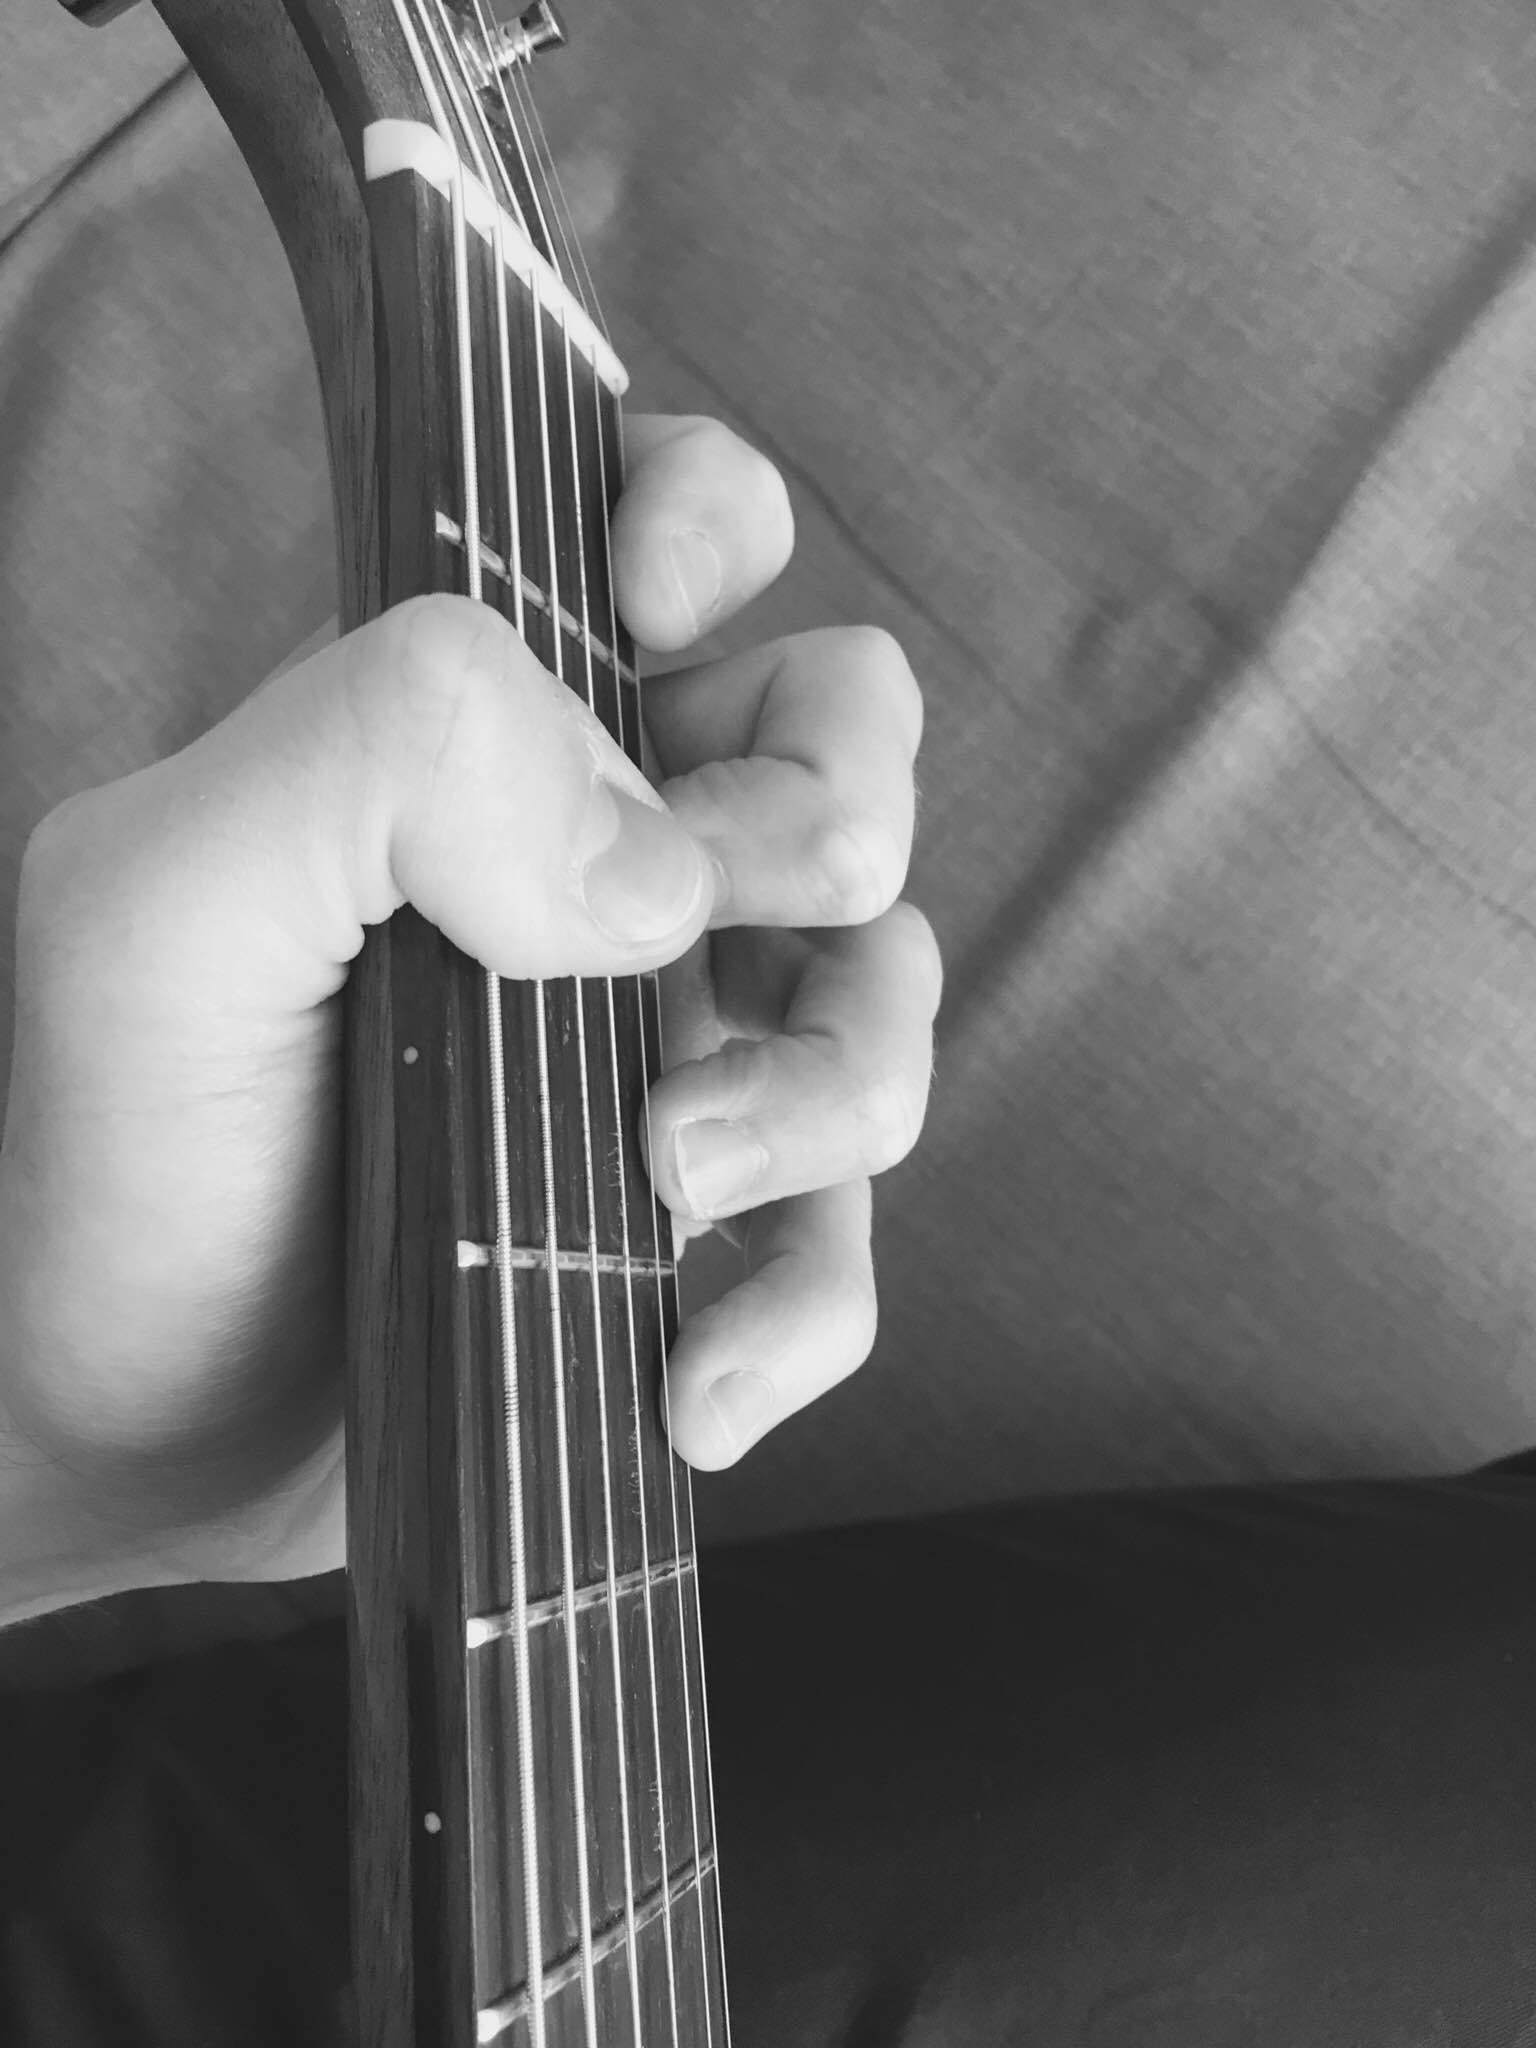 Wrong-thumb-on-guitar.-Fingers-with-no-stretch-on-fingerboard.-Improve-your-technique-on-guitar.